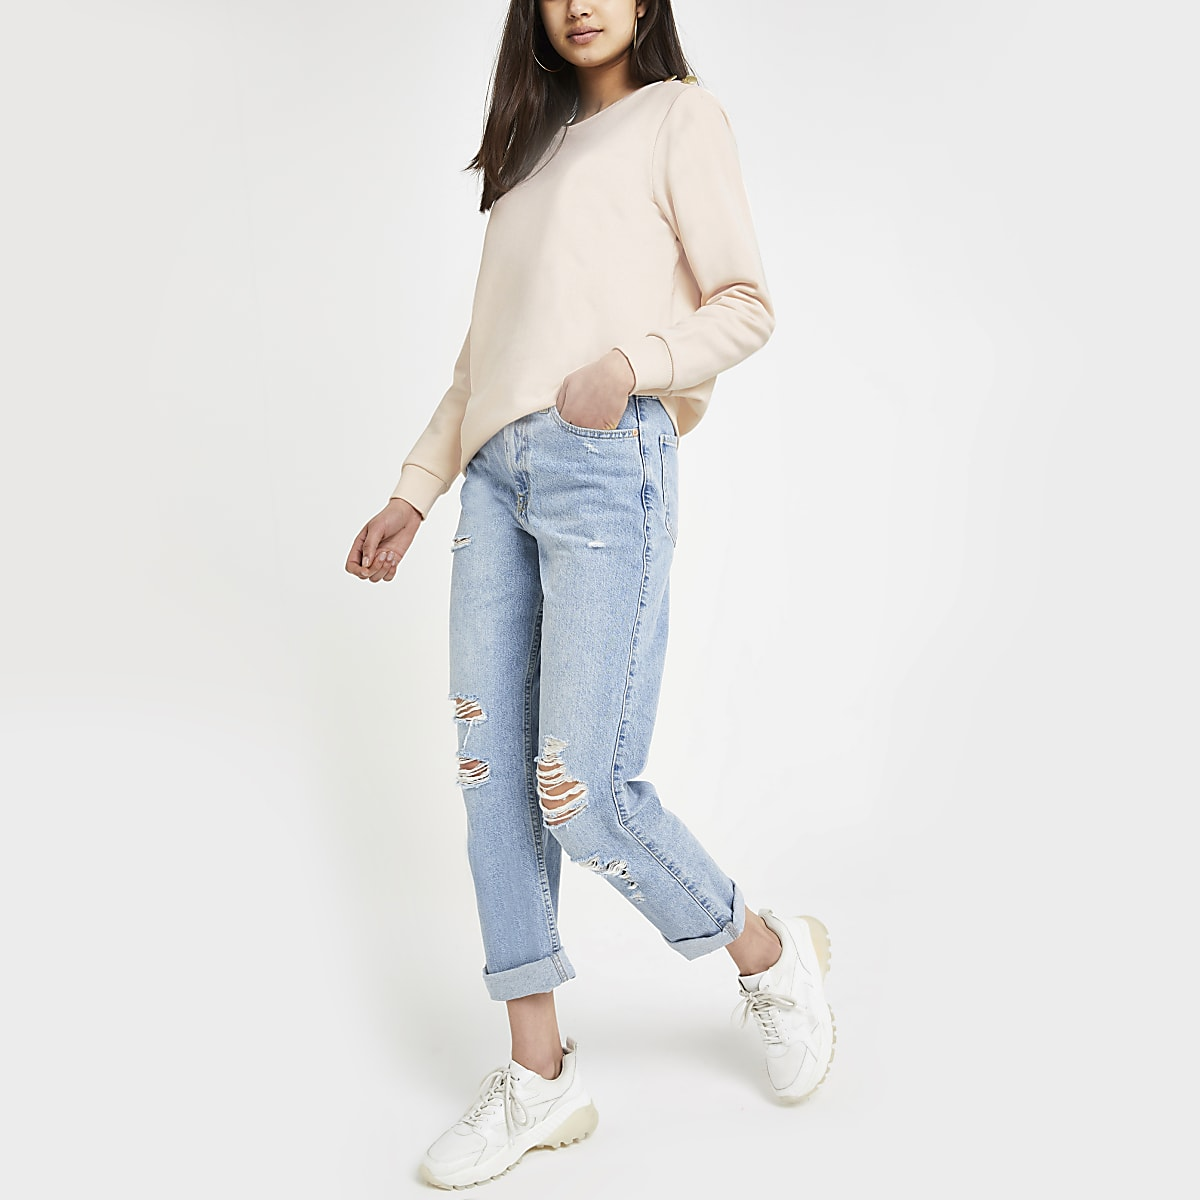 Pink button sweatshirt